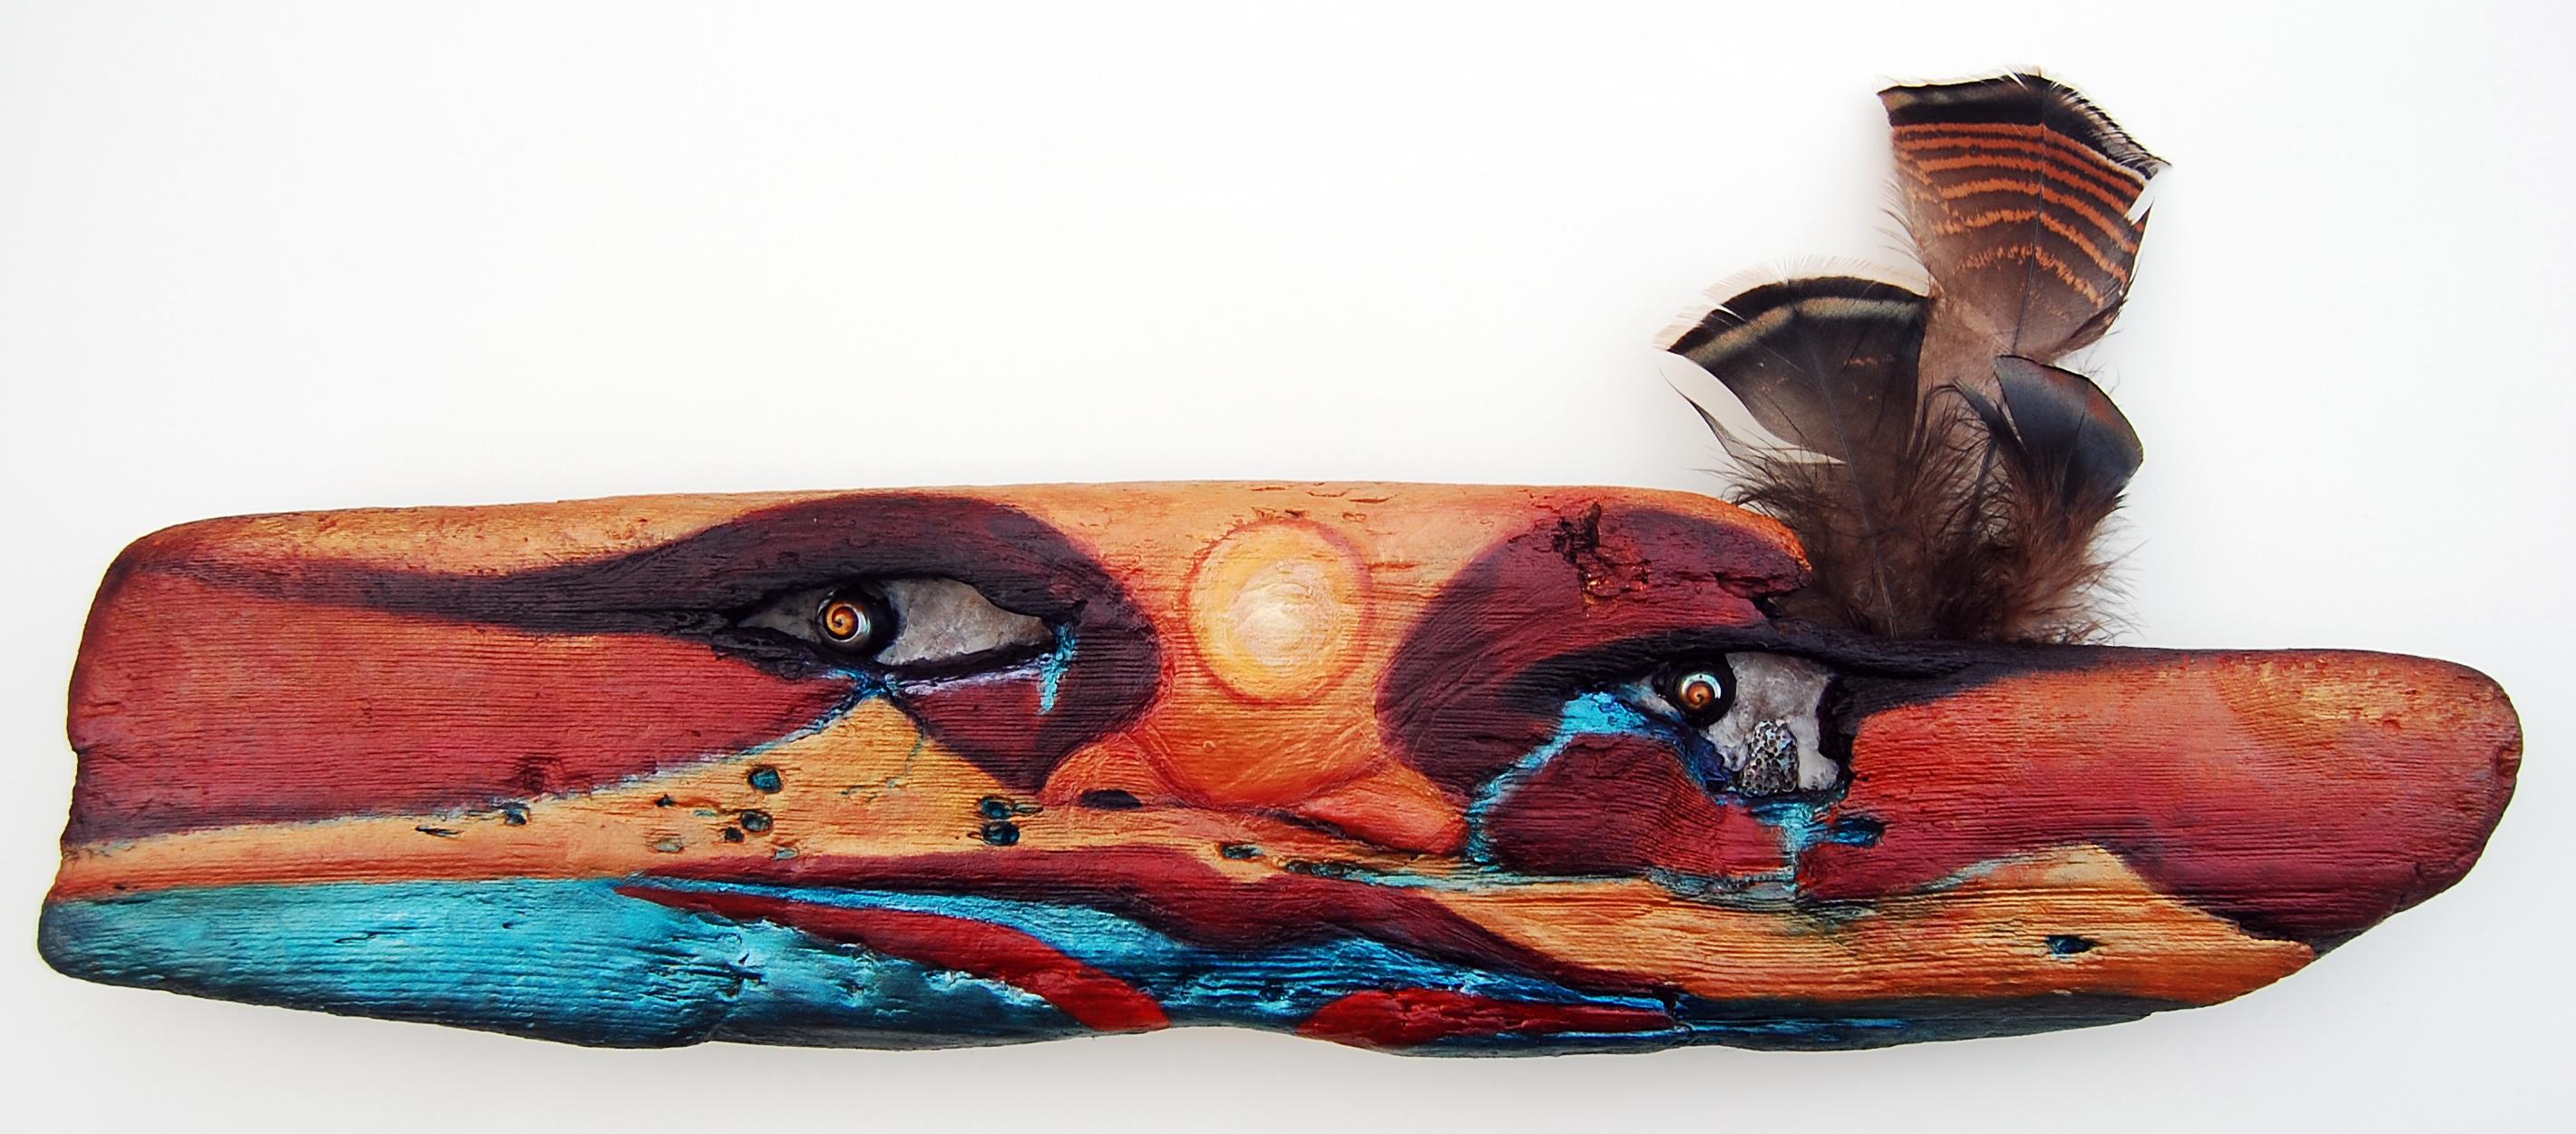 "Watershed (Ohlone Tears), 2012, Oil, shell, abalone, beeswax, driftwood, 9""h x 21""w, Eleanor Ruckman"